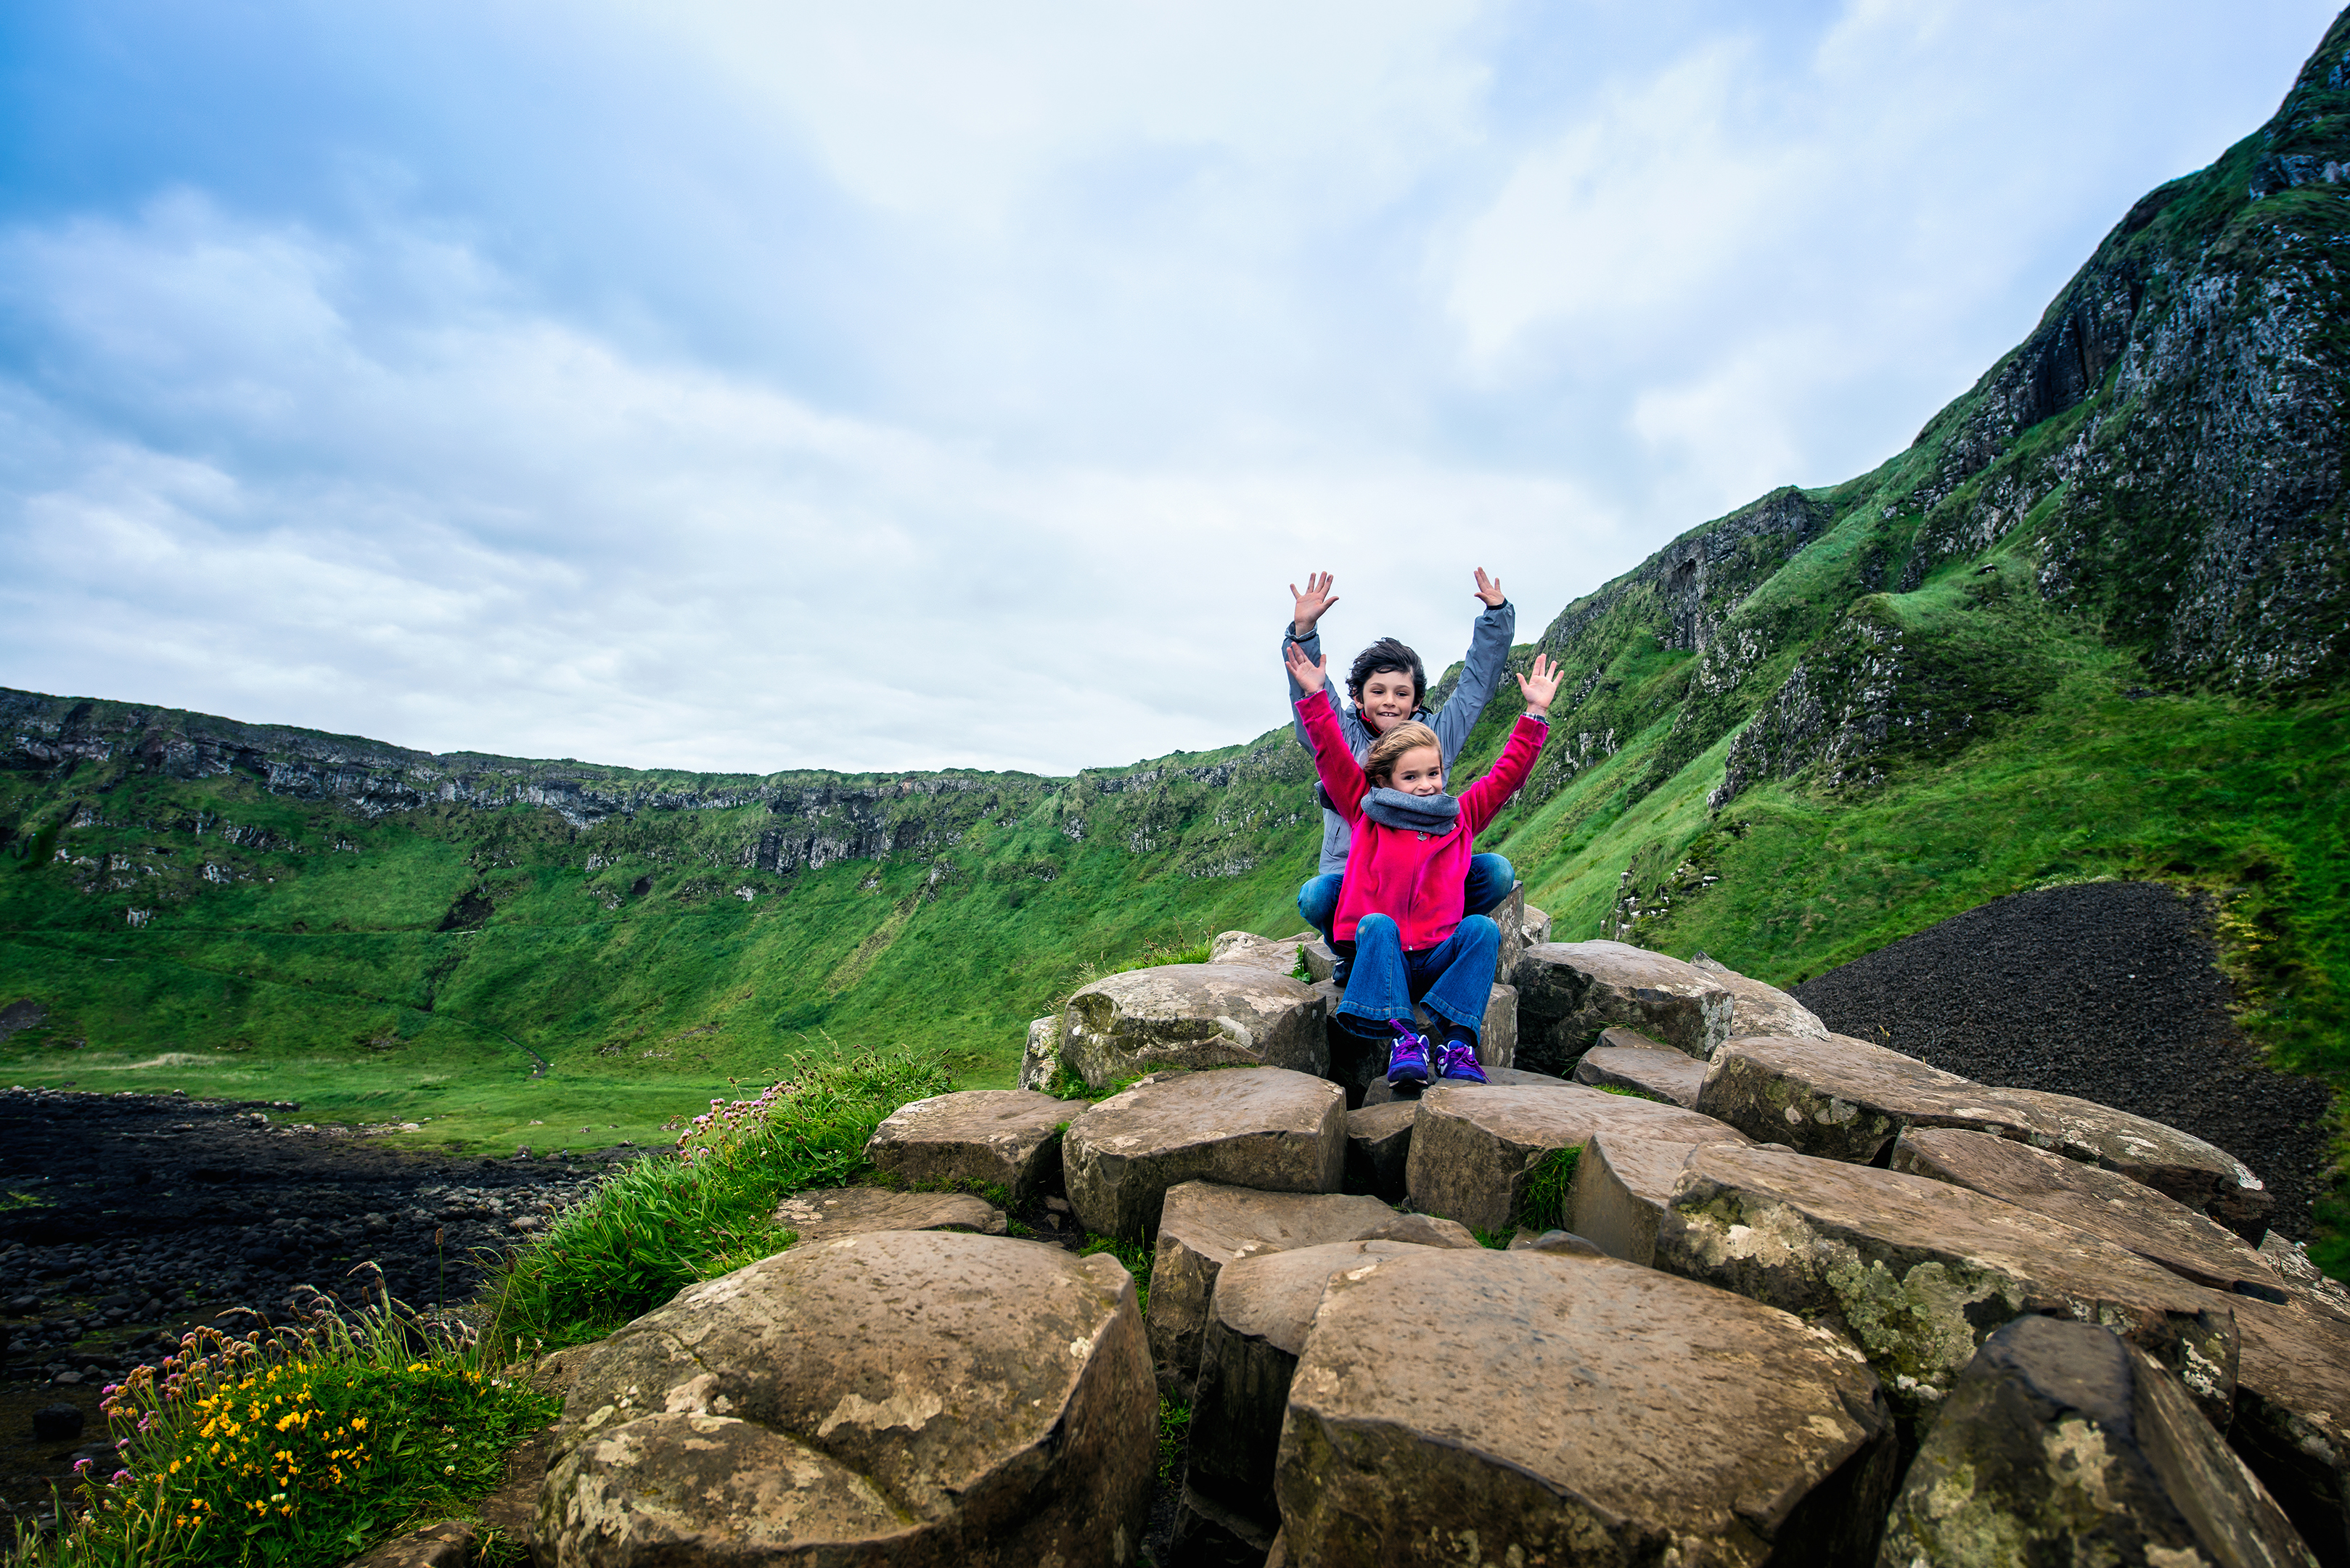 Happy Travelers at Giant's Causeway